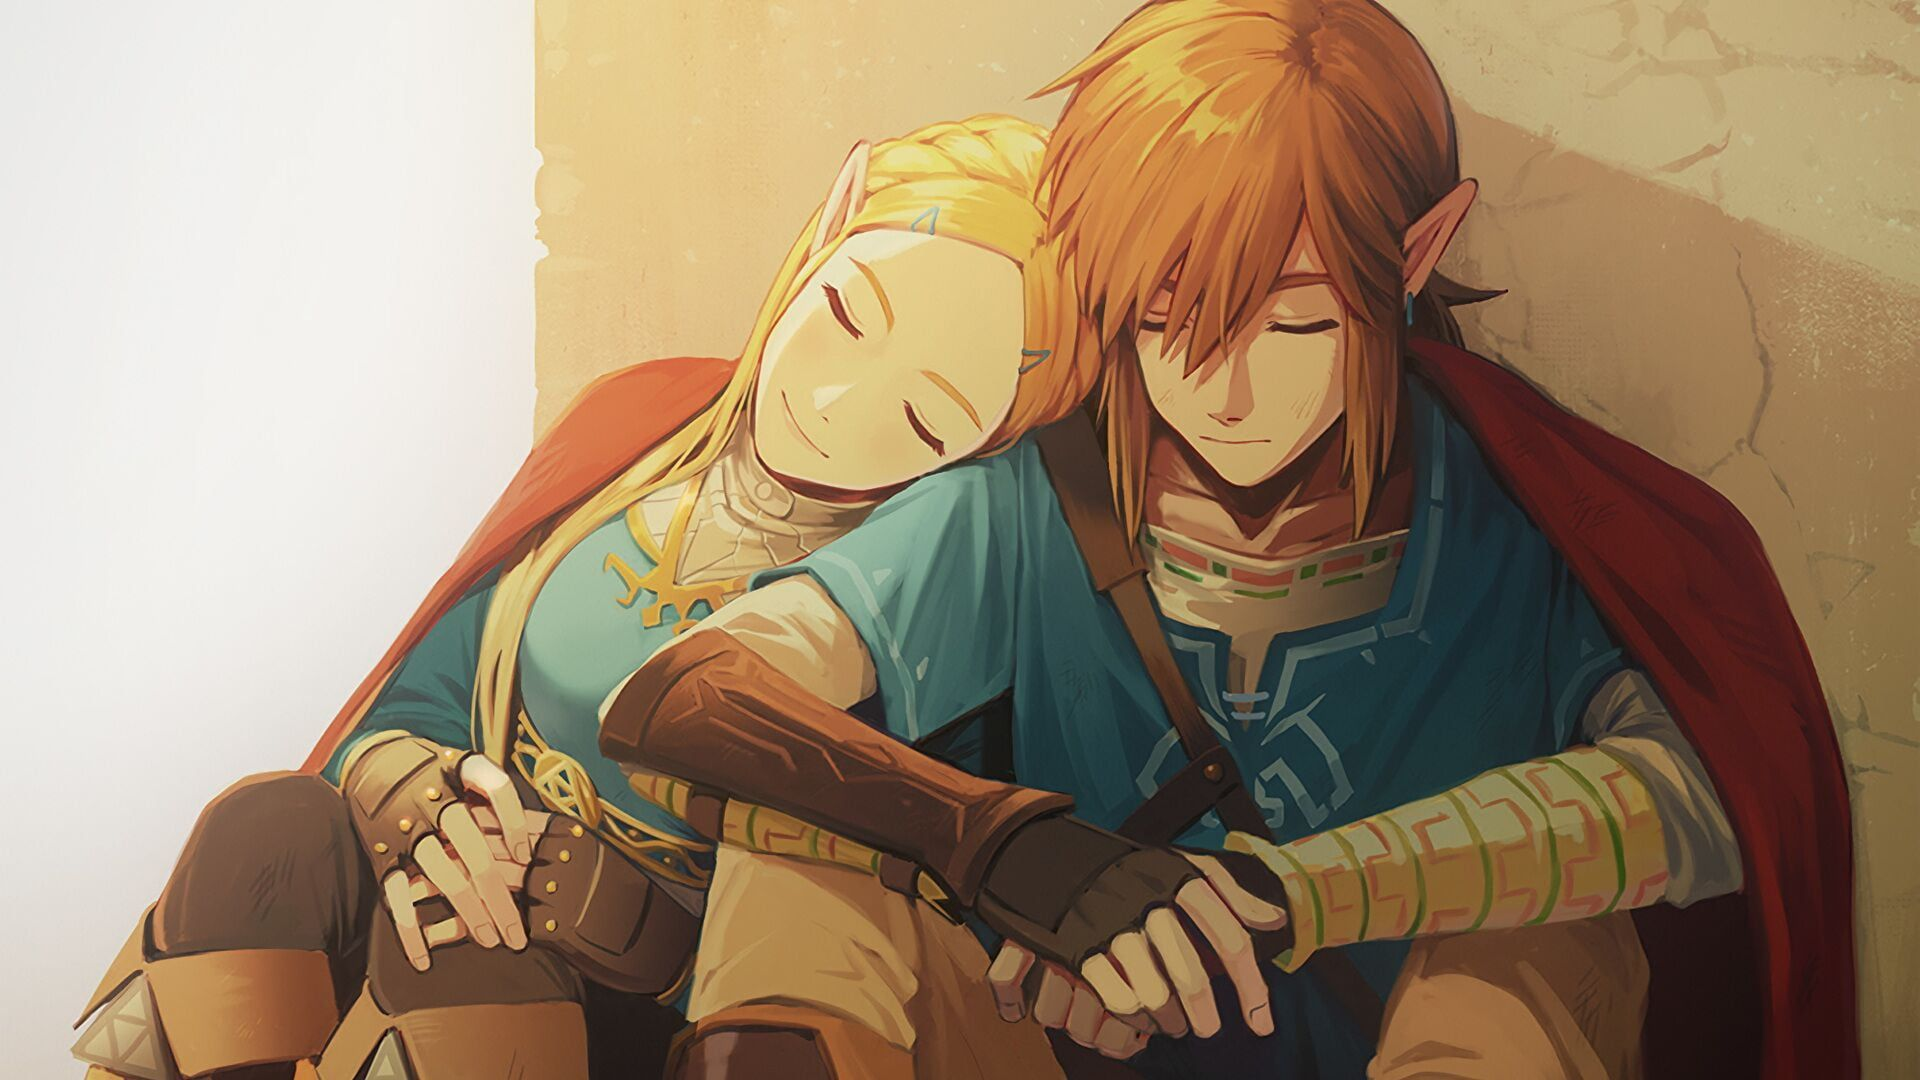 Man And Woman Animated Illustration The Legend Of Zelda Breath Of